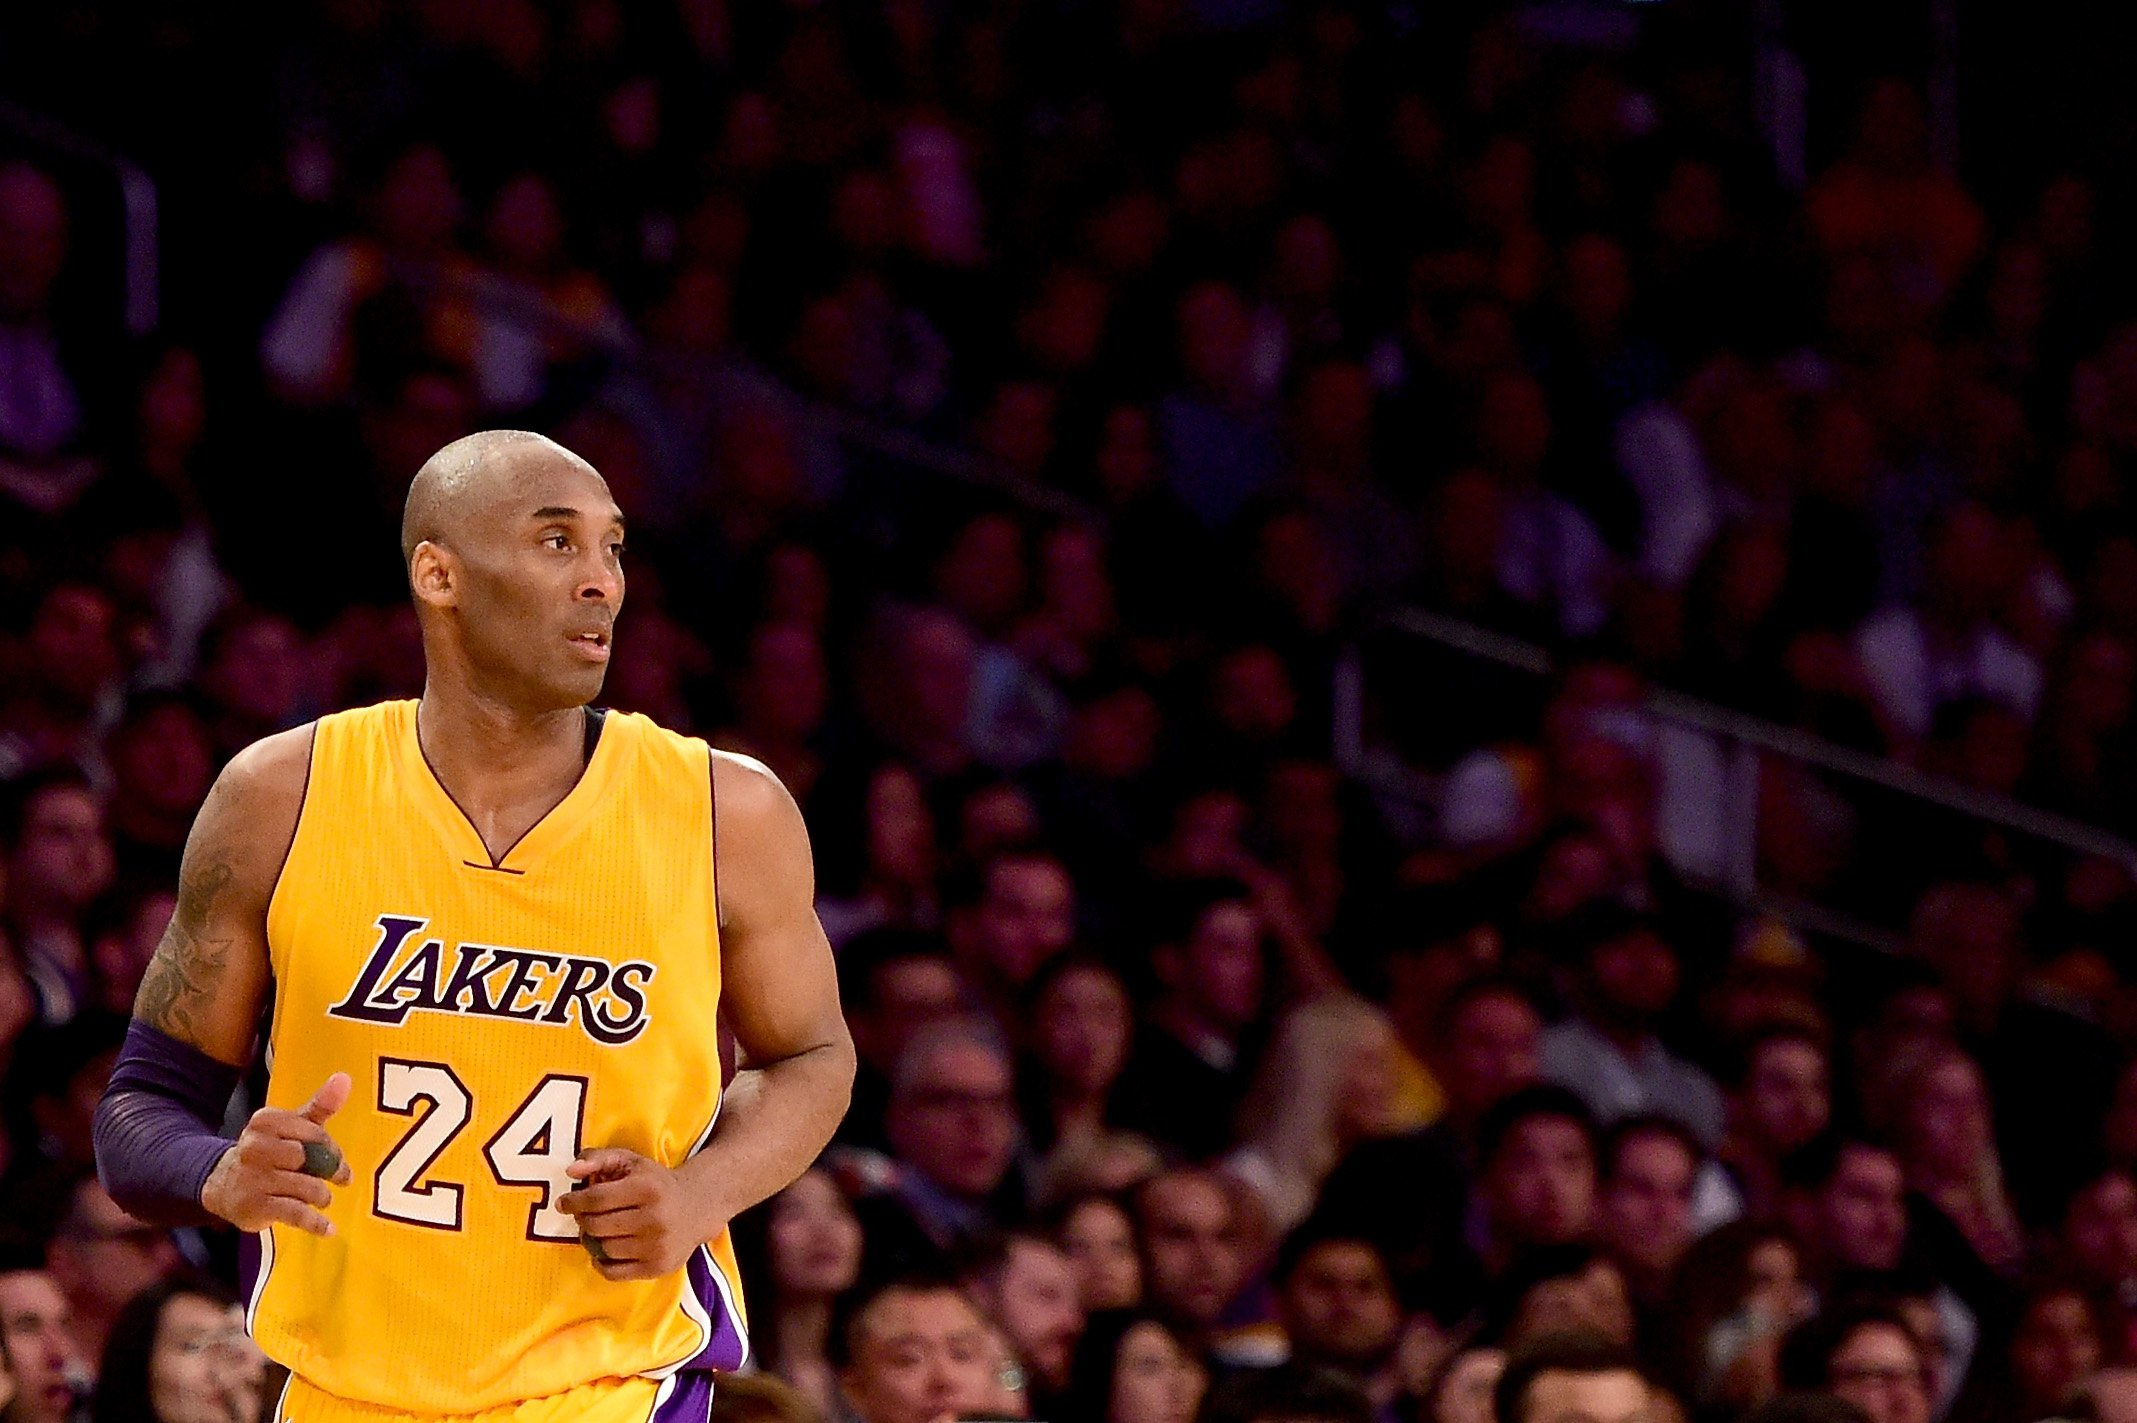 Kobe Bryant is seen during a game at Staples Center on April 13, 2016. (Harry How / Getty Images)